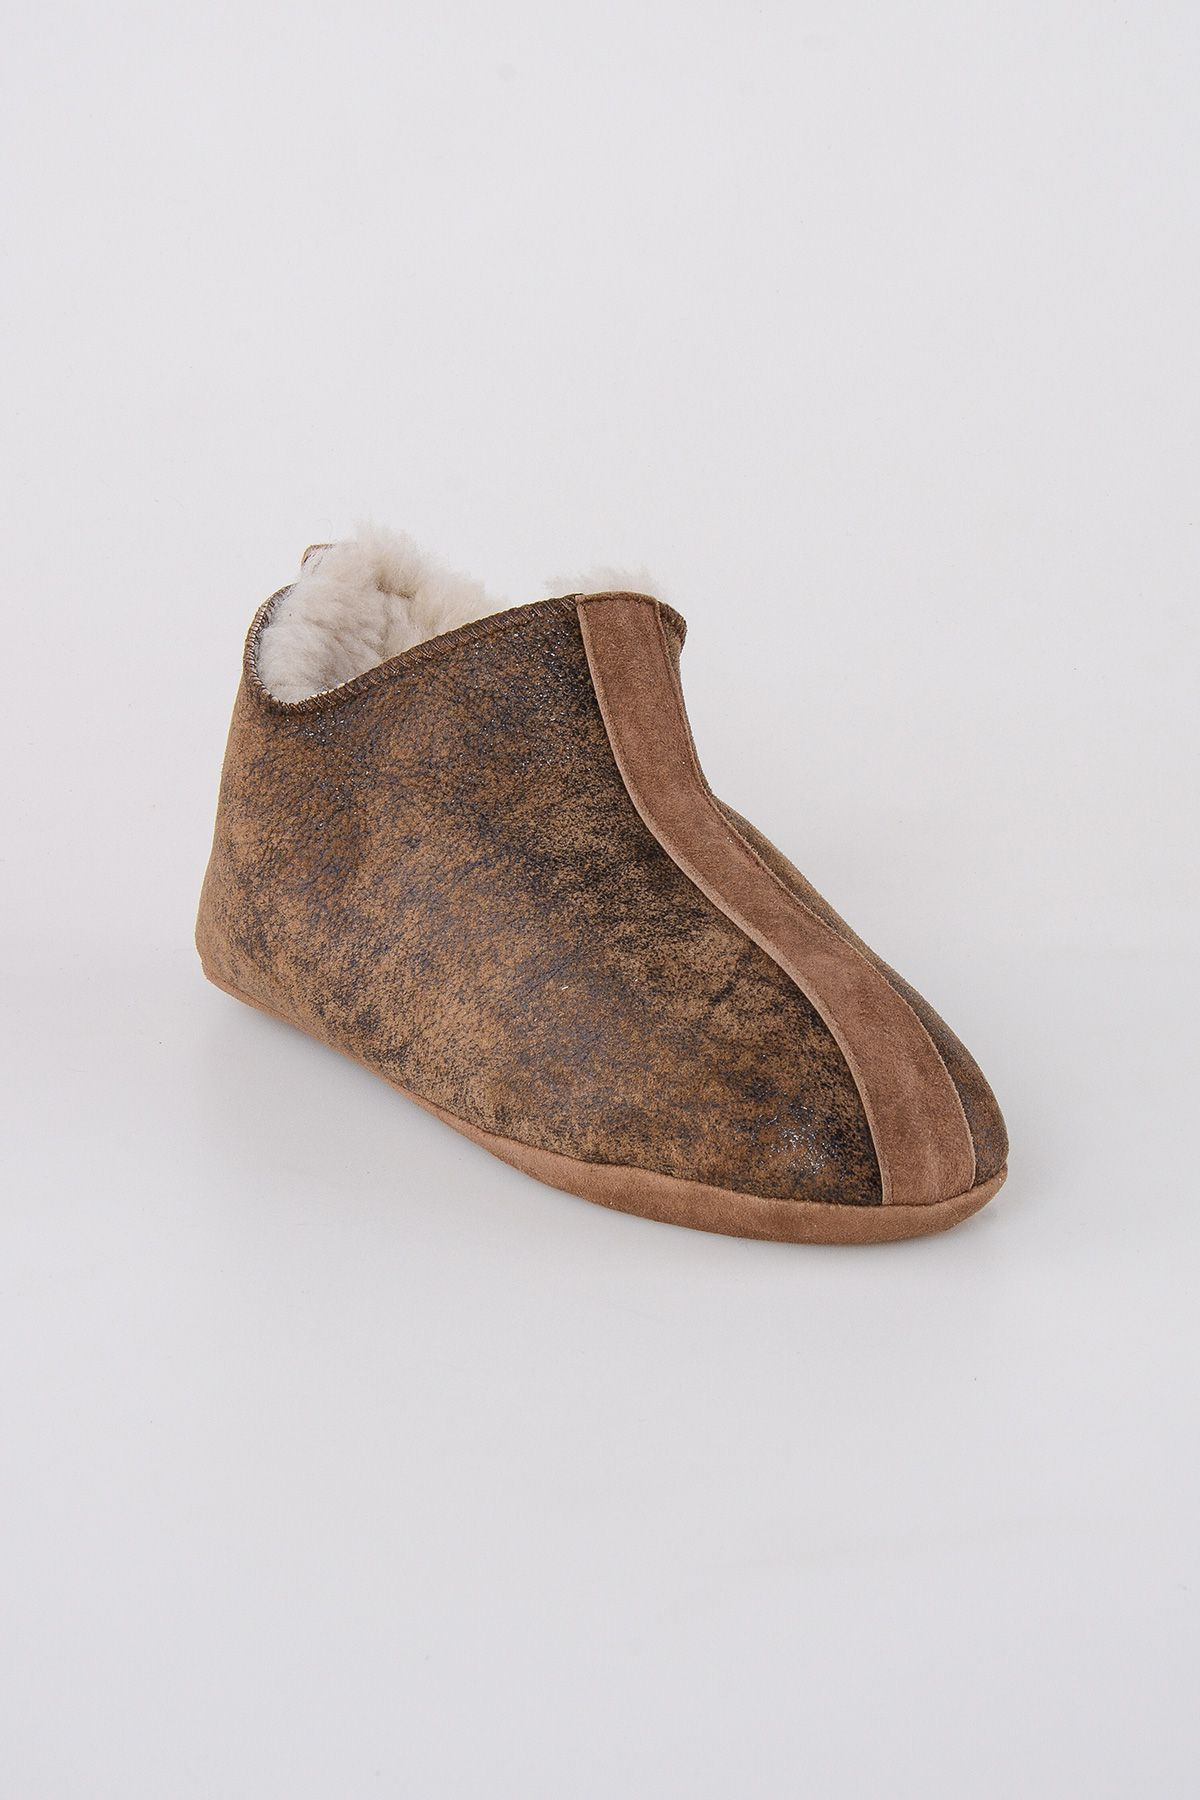 Pegia Shearling Men's House Shoes 111008 Brown